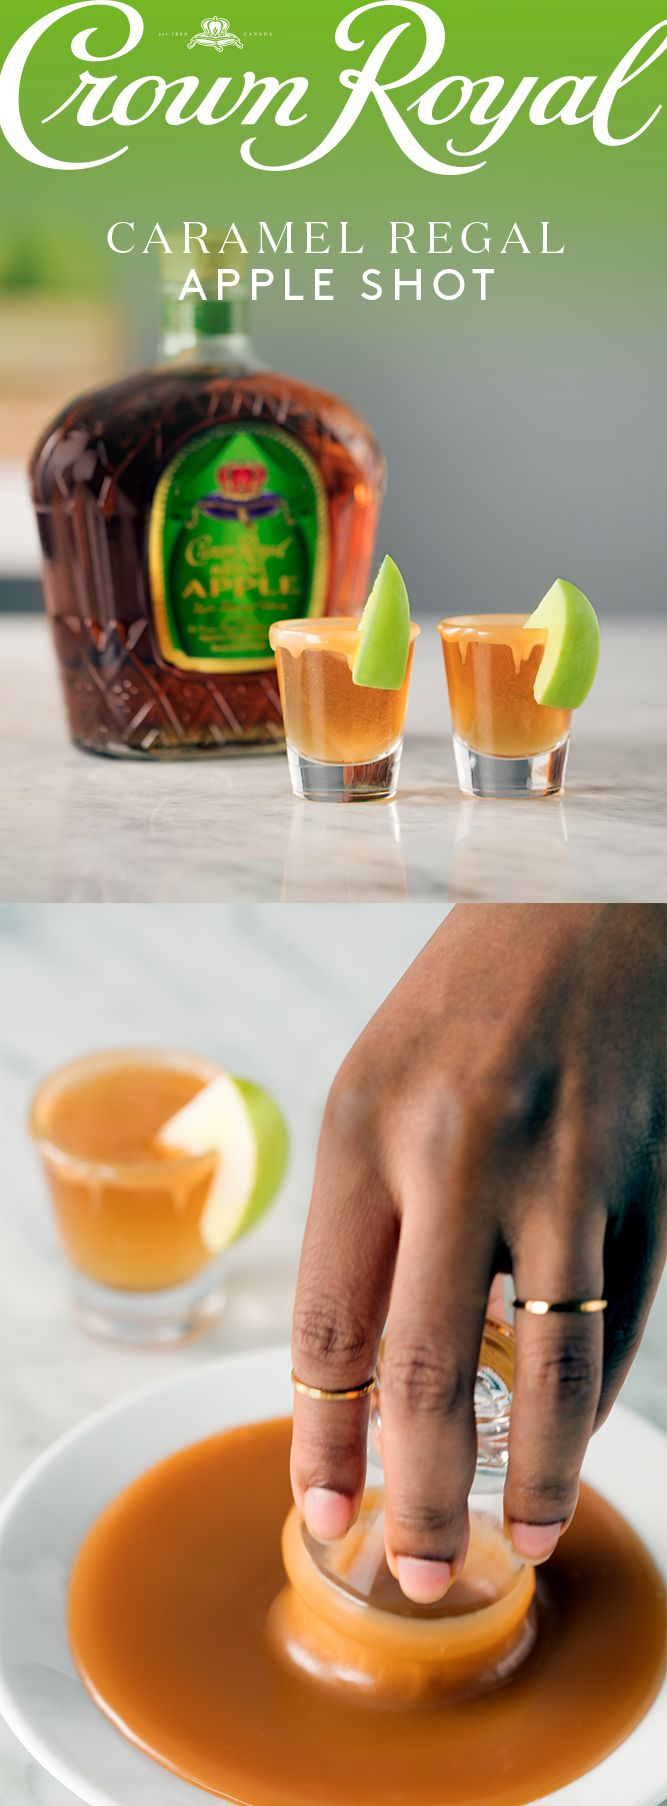 This St. Patrick's Day, break out the green with a shot of Crown Royal Regal Apple. Simply dip your favorite shot glass in a shallow bowl or plate of caramel sauce and add 1.5 oz Crown Royal Regal Apple. Garnish with a crisp apple slice and raise a glass to the patron saint of Ireland, the whisky in your cup, and the great people surrounding you.